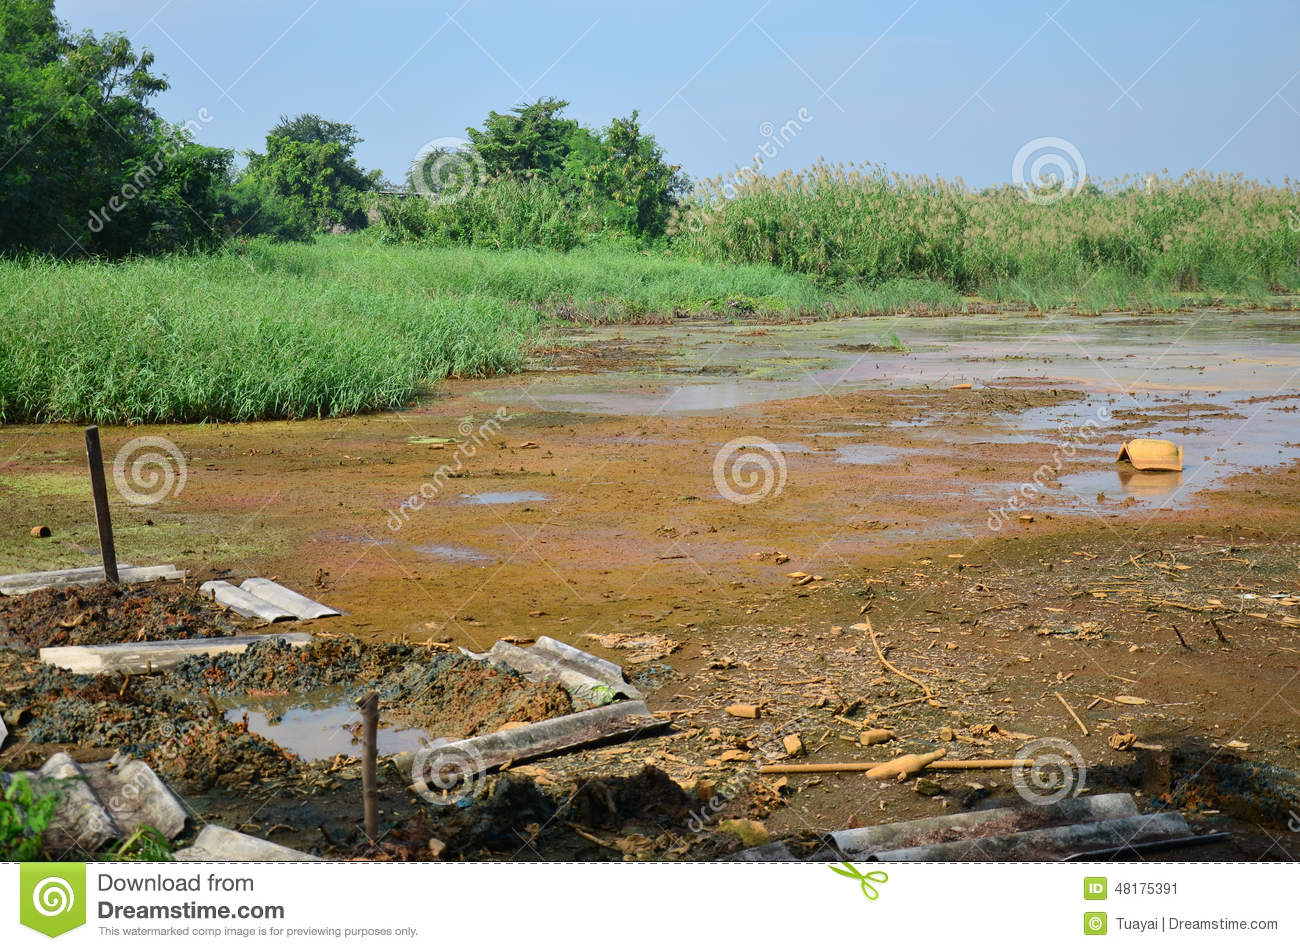 the effects of heavy metals in Effects of heavy metals on soil enzymatic activities in the ishiagu mining area of ebonyi state wwwiosrjournalsorg 67 | page.